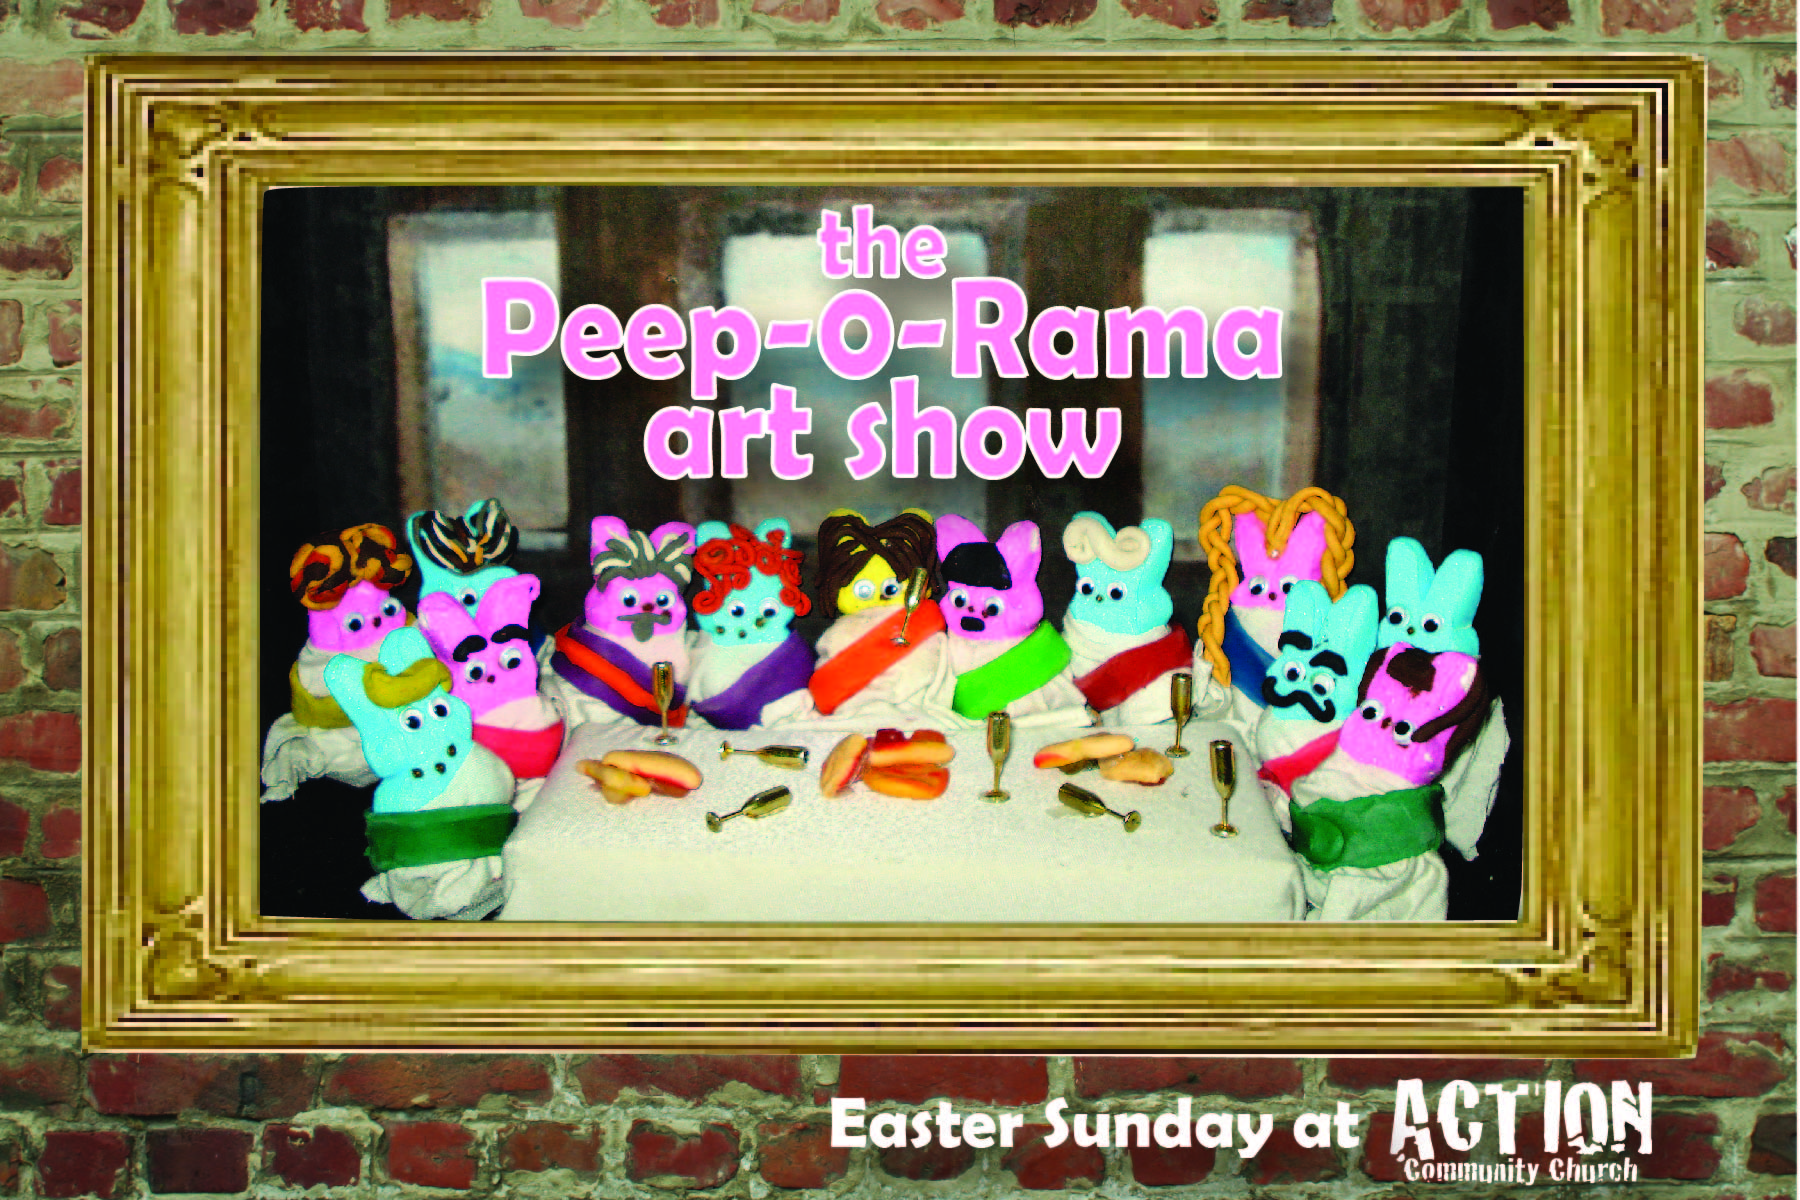 Peep-o-Rama 13-01 – Action Community Church